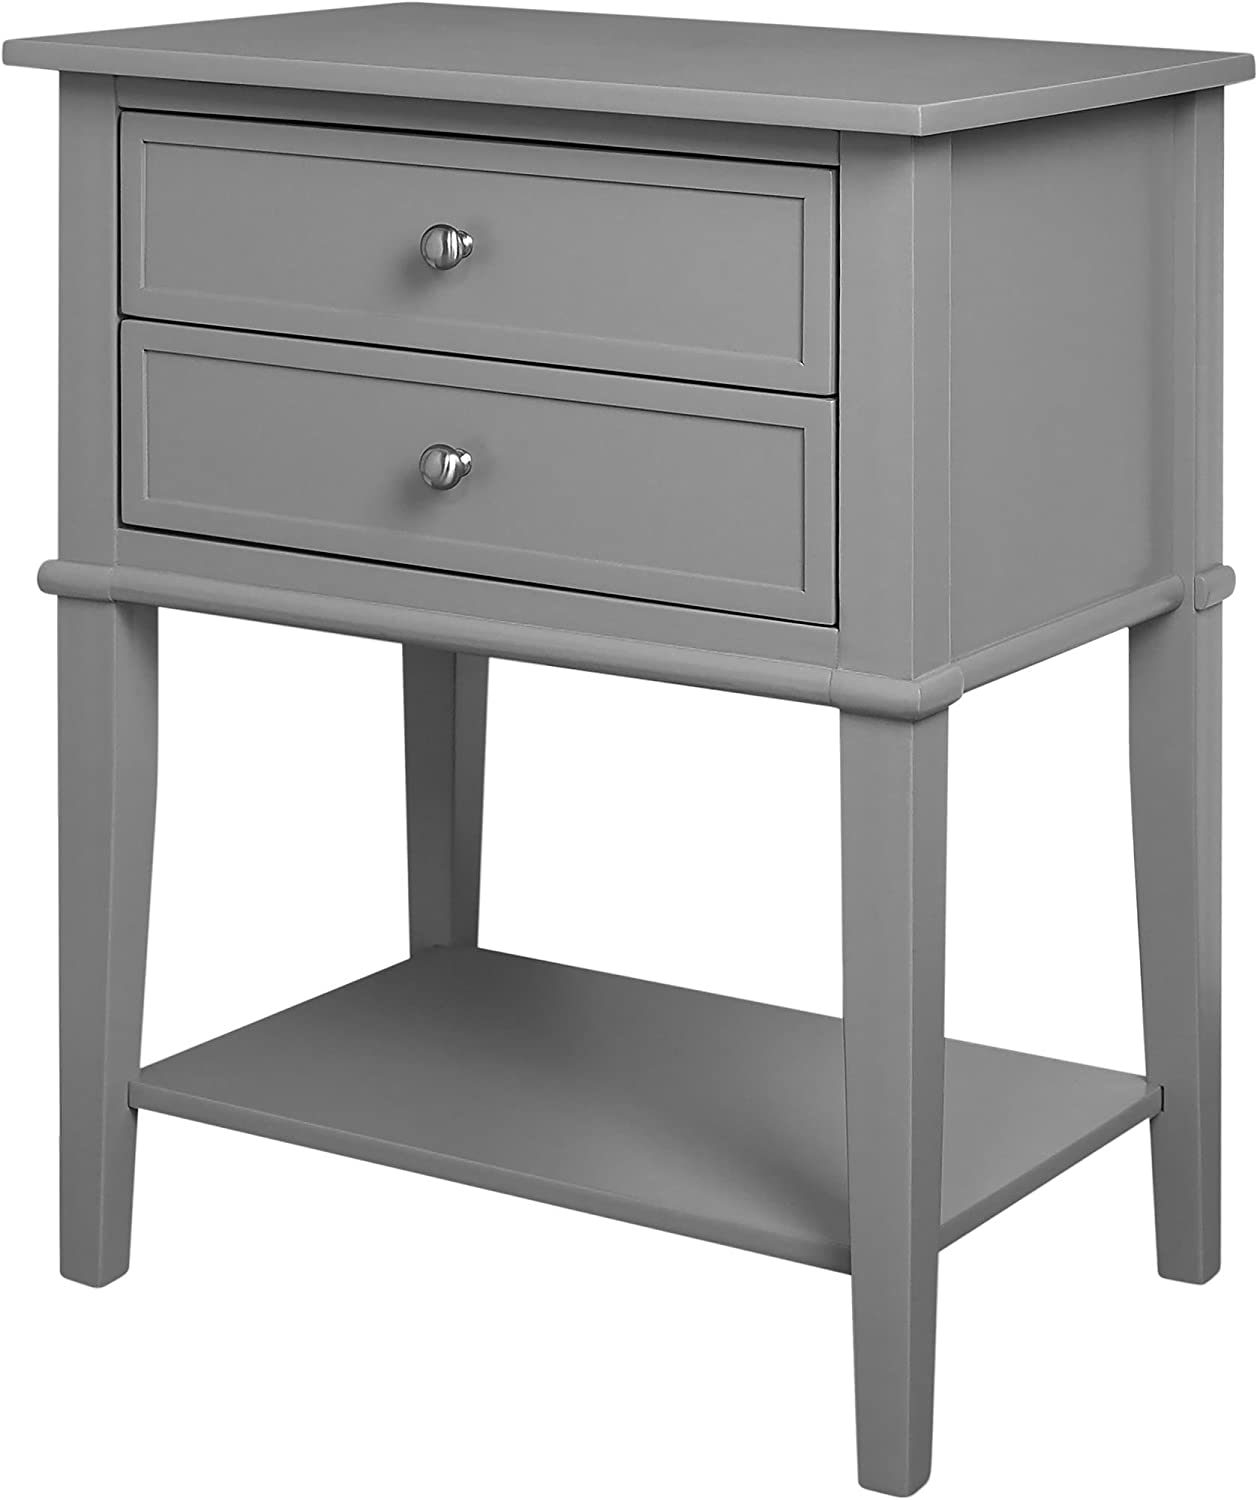 - Ameriwood Home Franklin Accent Table With 2 Drawers, Gray: Amazon